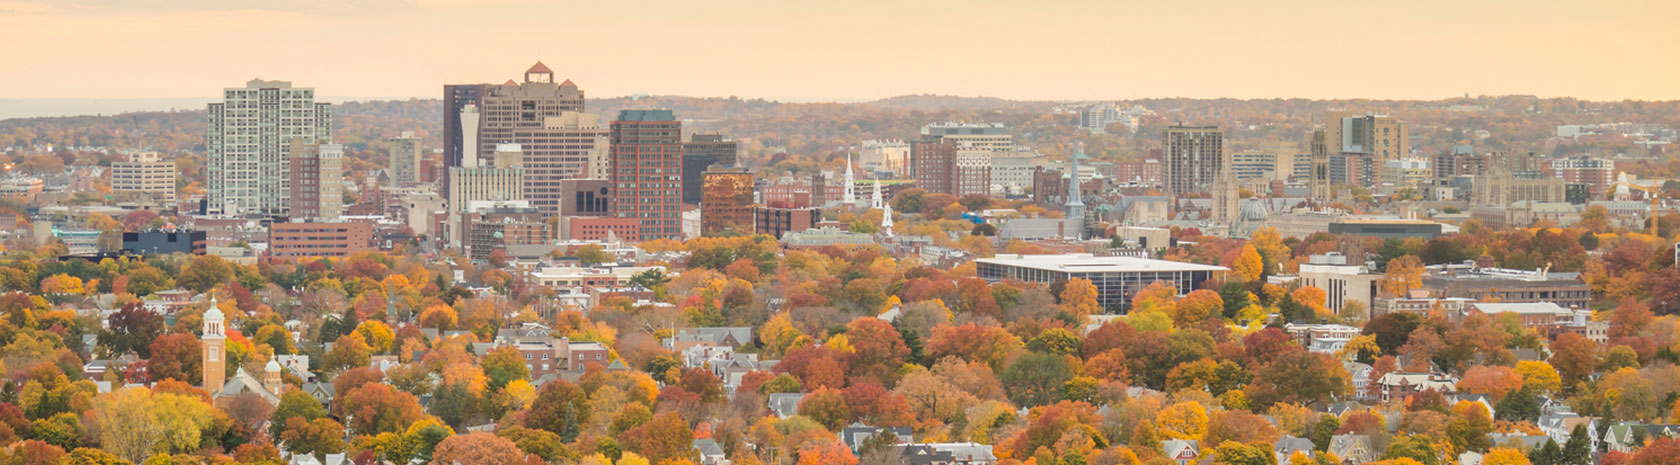 A cloud-covered yellow sky over a city with residential homes divided by autumn colored trees in the foreground